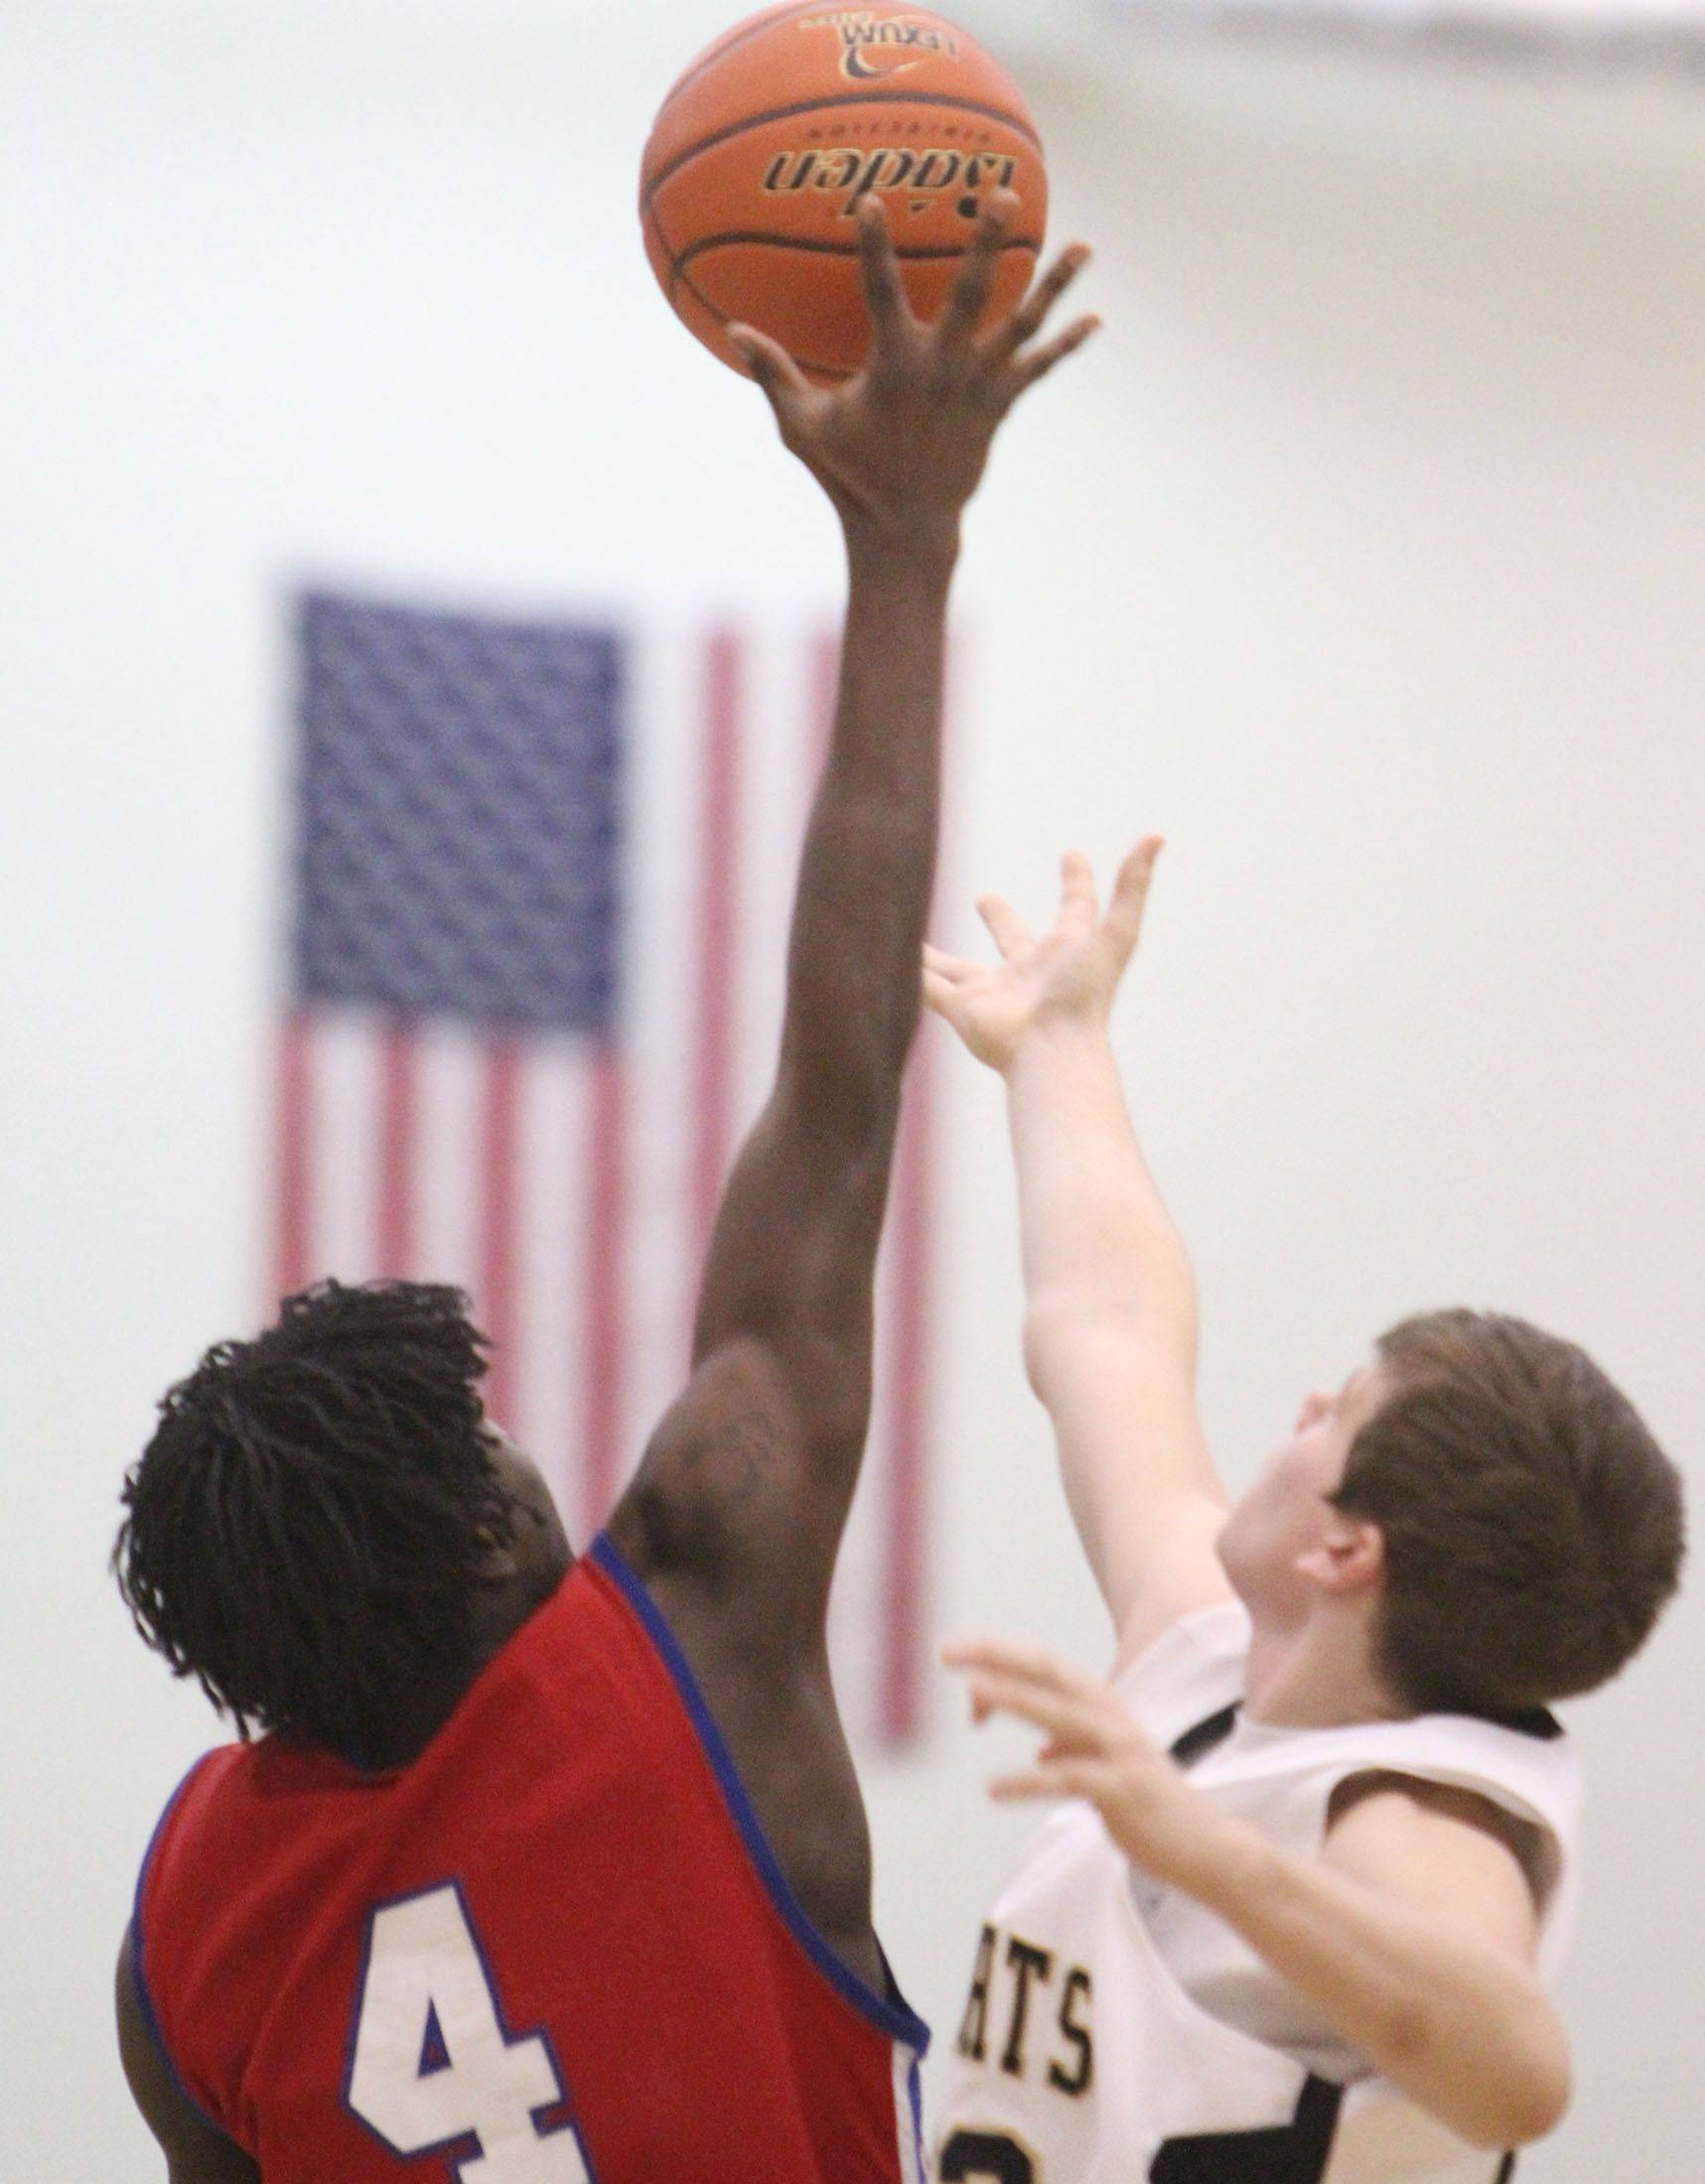 Images from the Dundee-Crown at Grayslake North boys basketball game Friday, February 25.